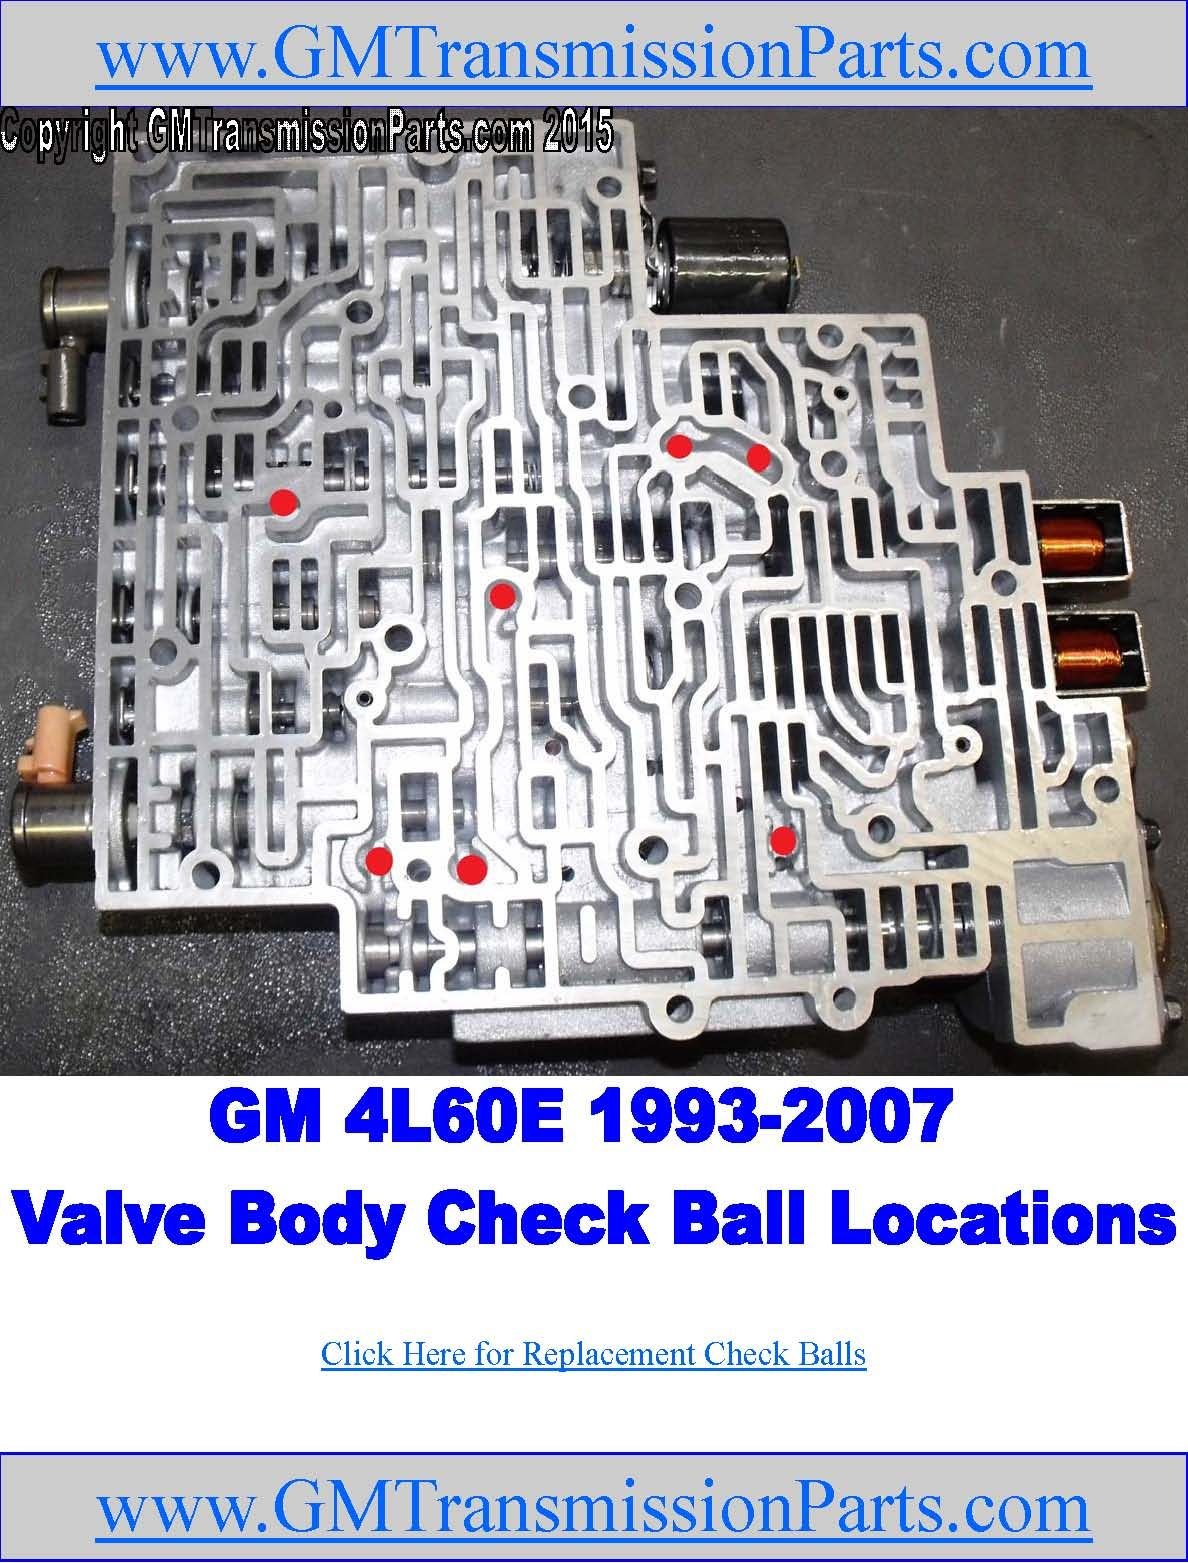 medium resolution of check ball locations in gm s 4l60e transmission valve bodies there are a total of 7 check balls used in valve bodies 1993 2007 get replacement balls from